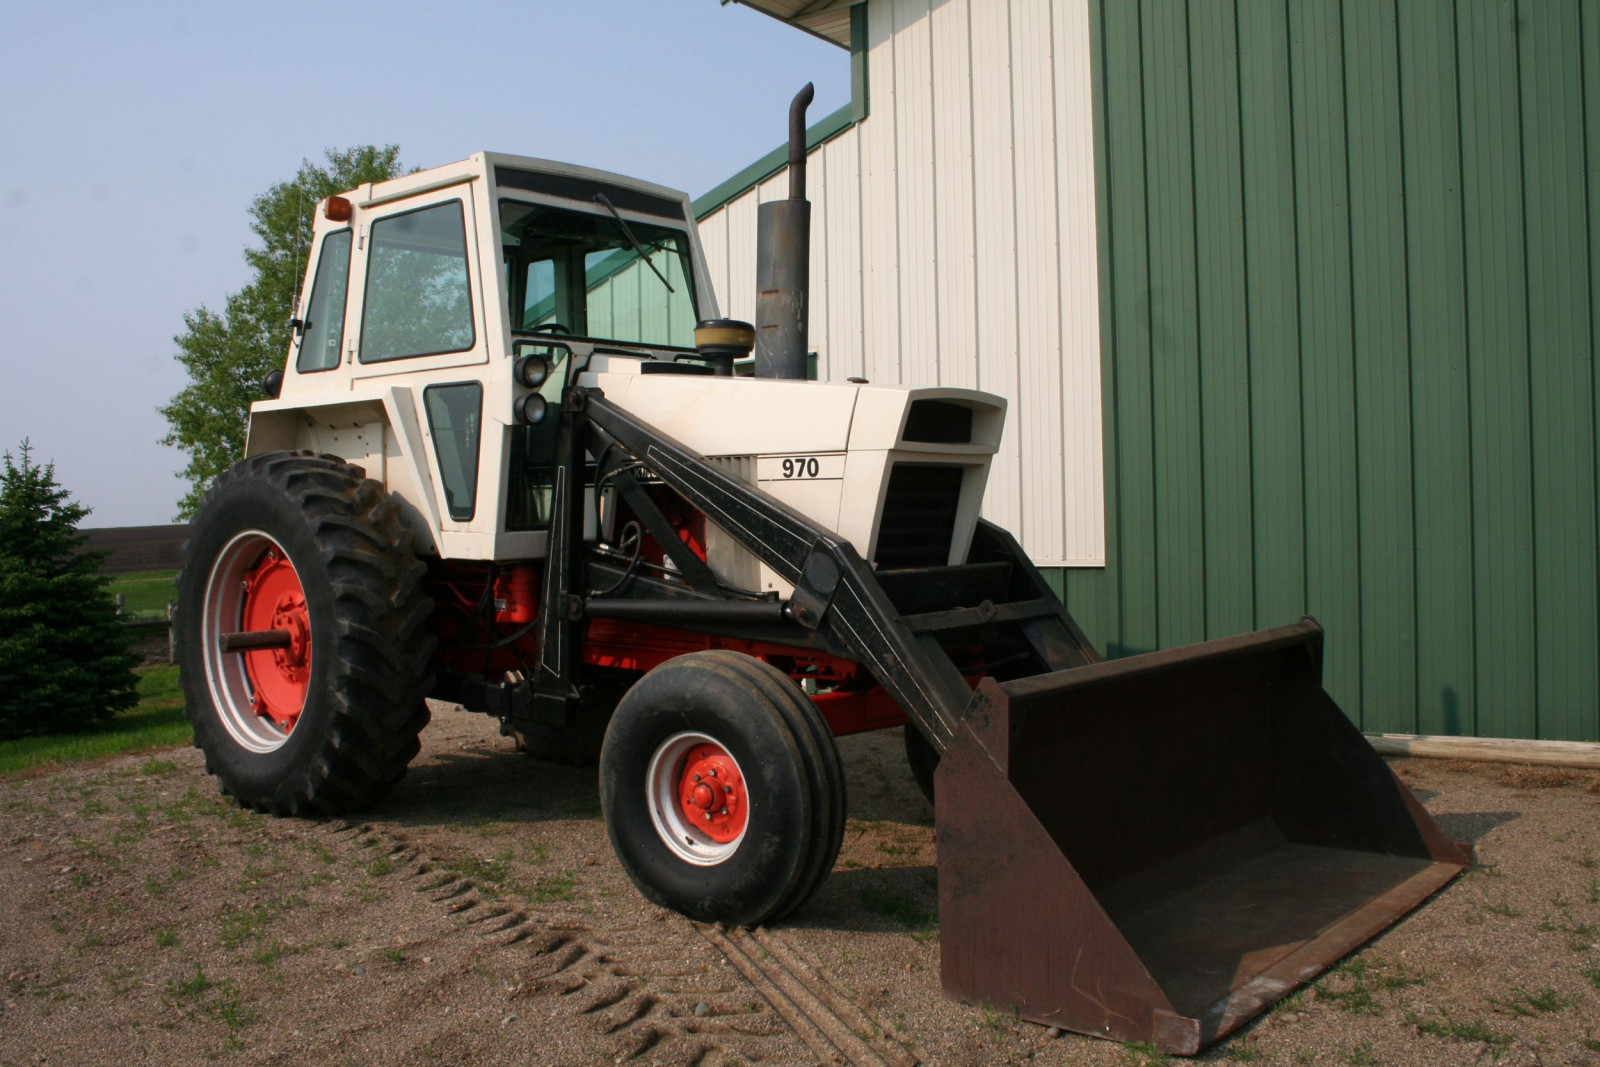 1978 Case 970 Tractor - Image 3